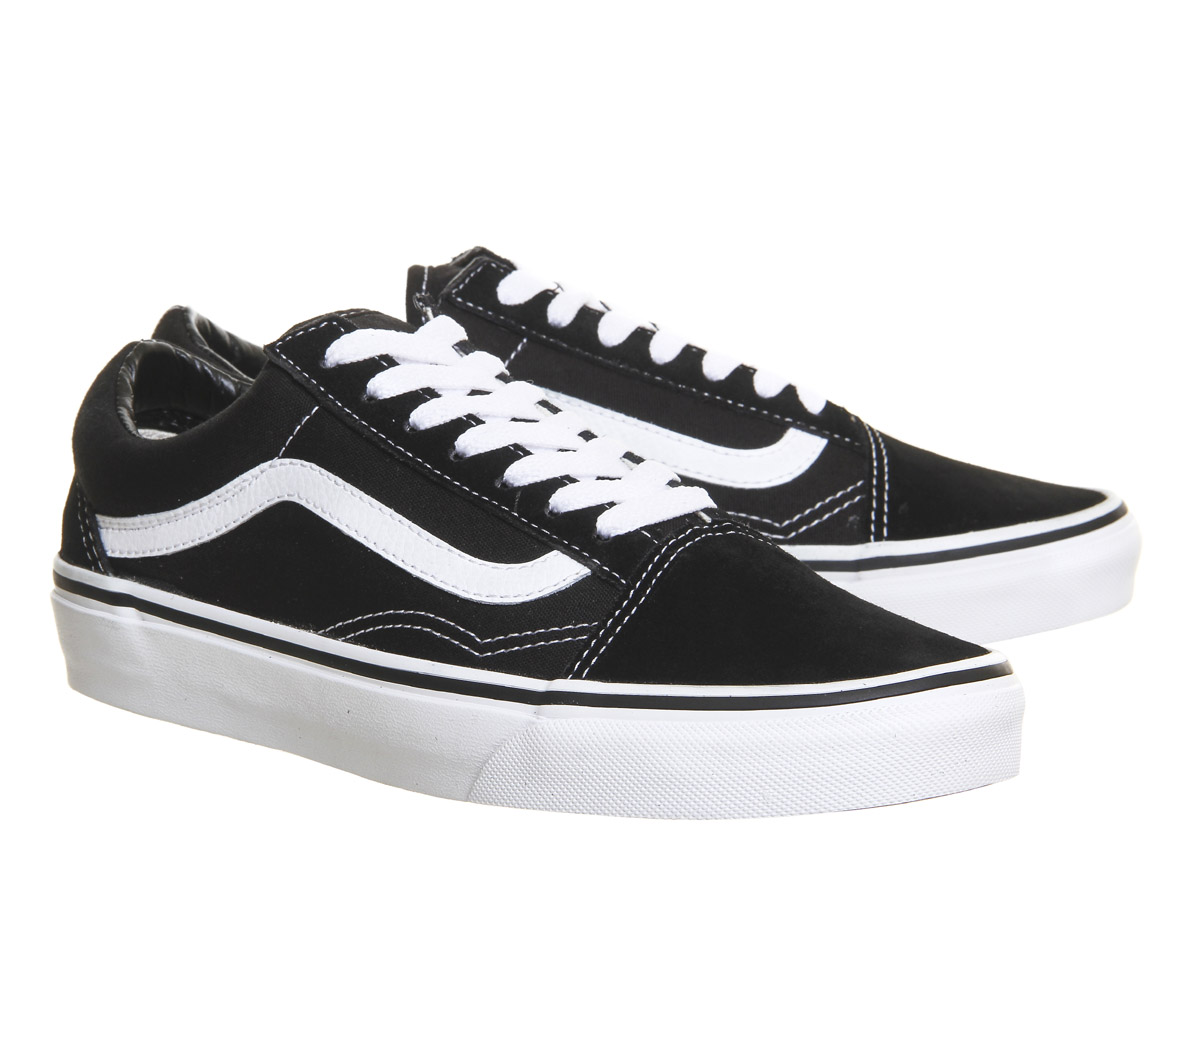 mens vans old skool black trainers shoes ebay. Black Bedroom Furniture Sets. Home Design Ideas